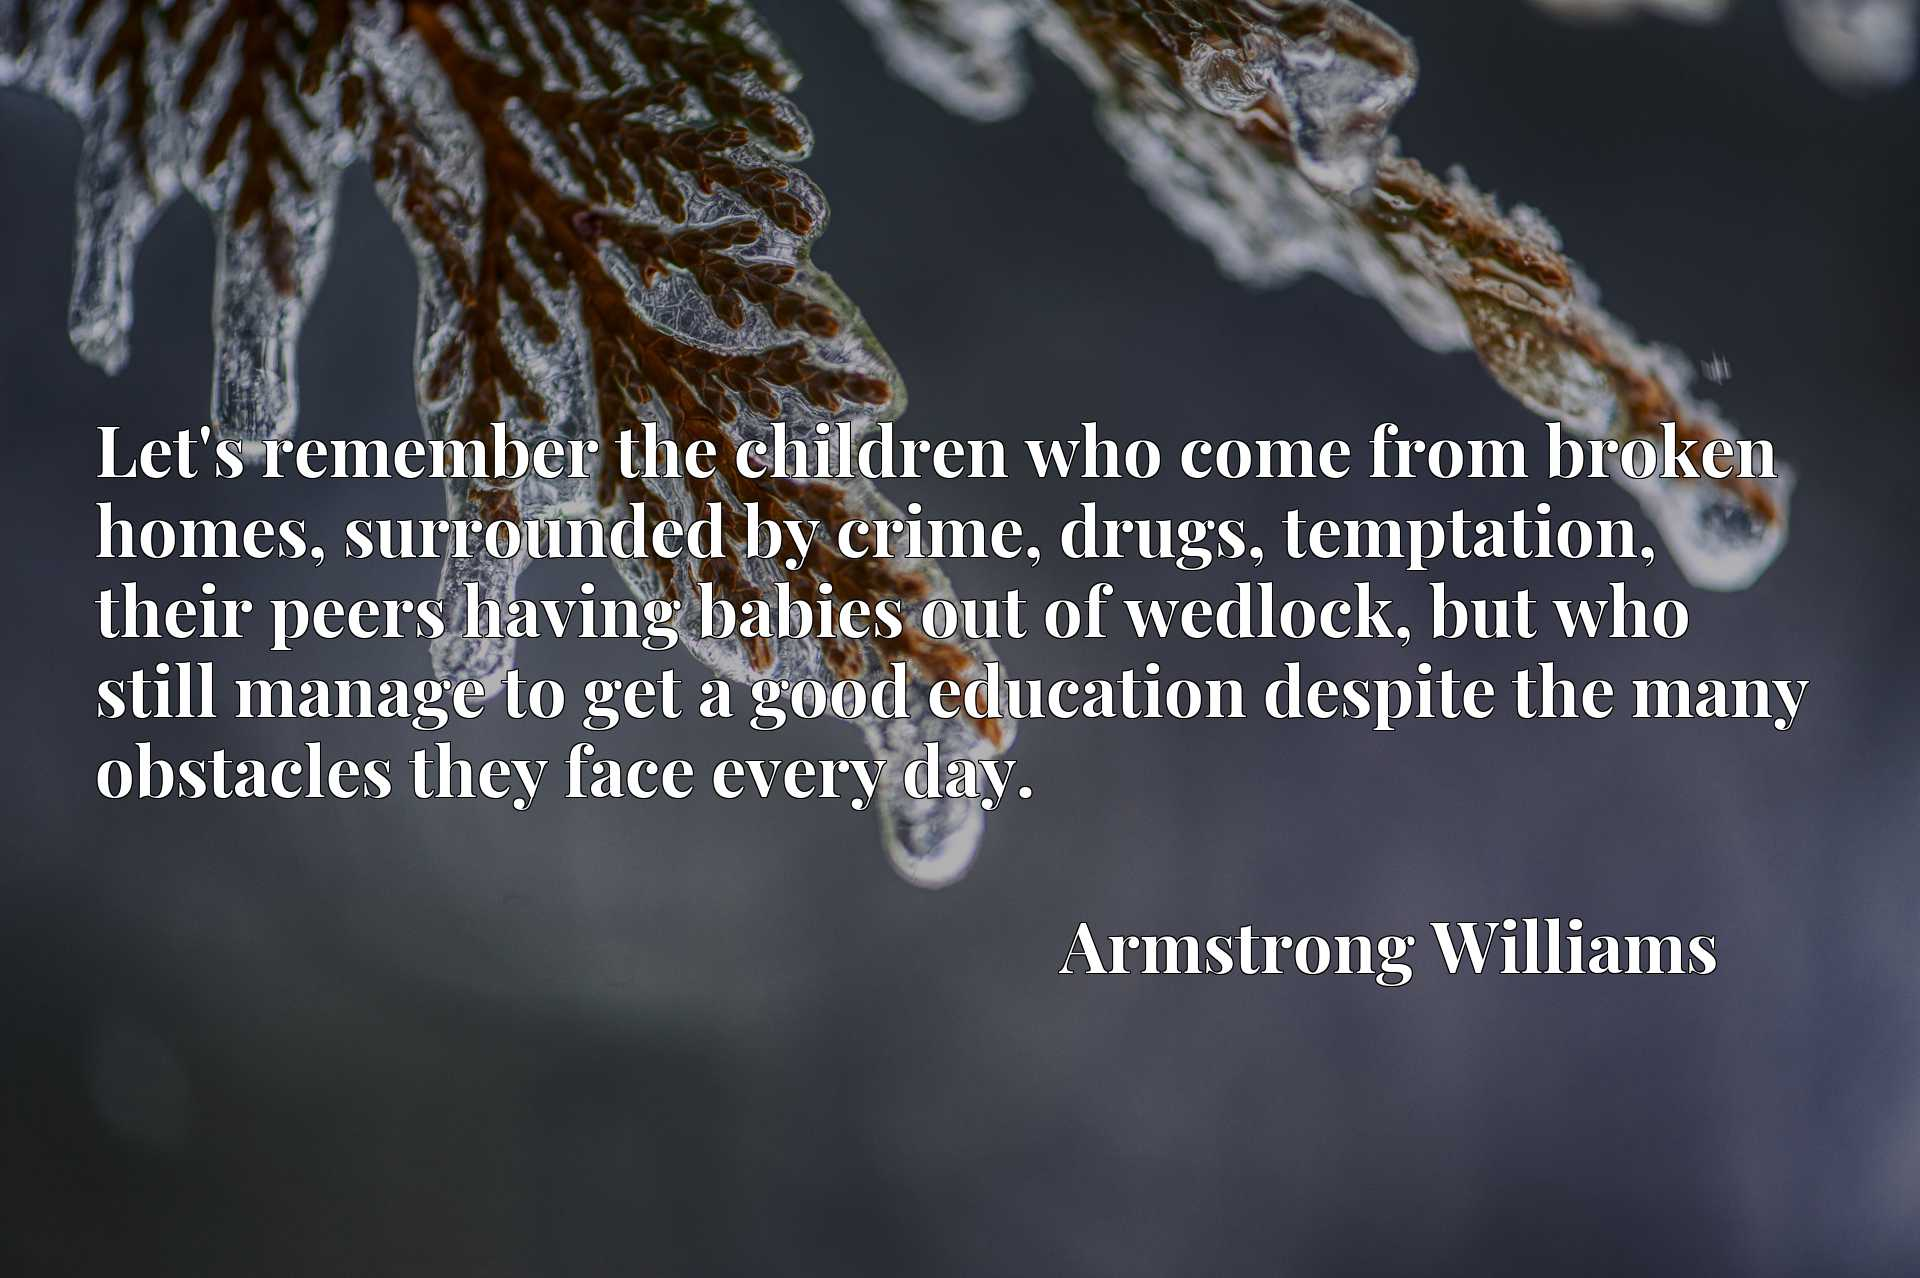 Let's remember the children who come from broken homes, surrounded by crime, drugs, temptation, their peers having babies out of wedlock, but who still manage to get a good education despite the many obstacles they face every day.